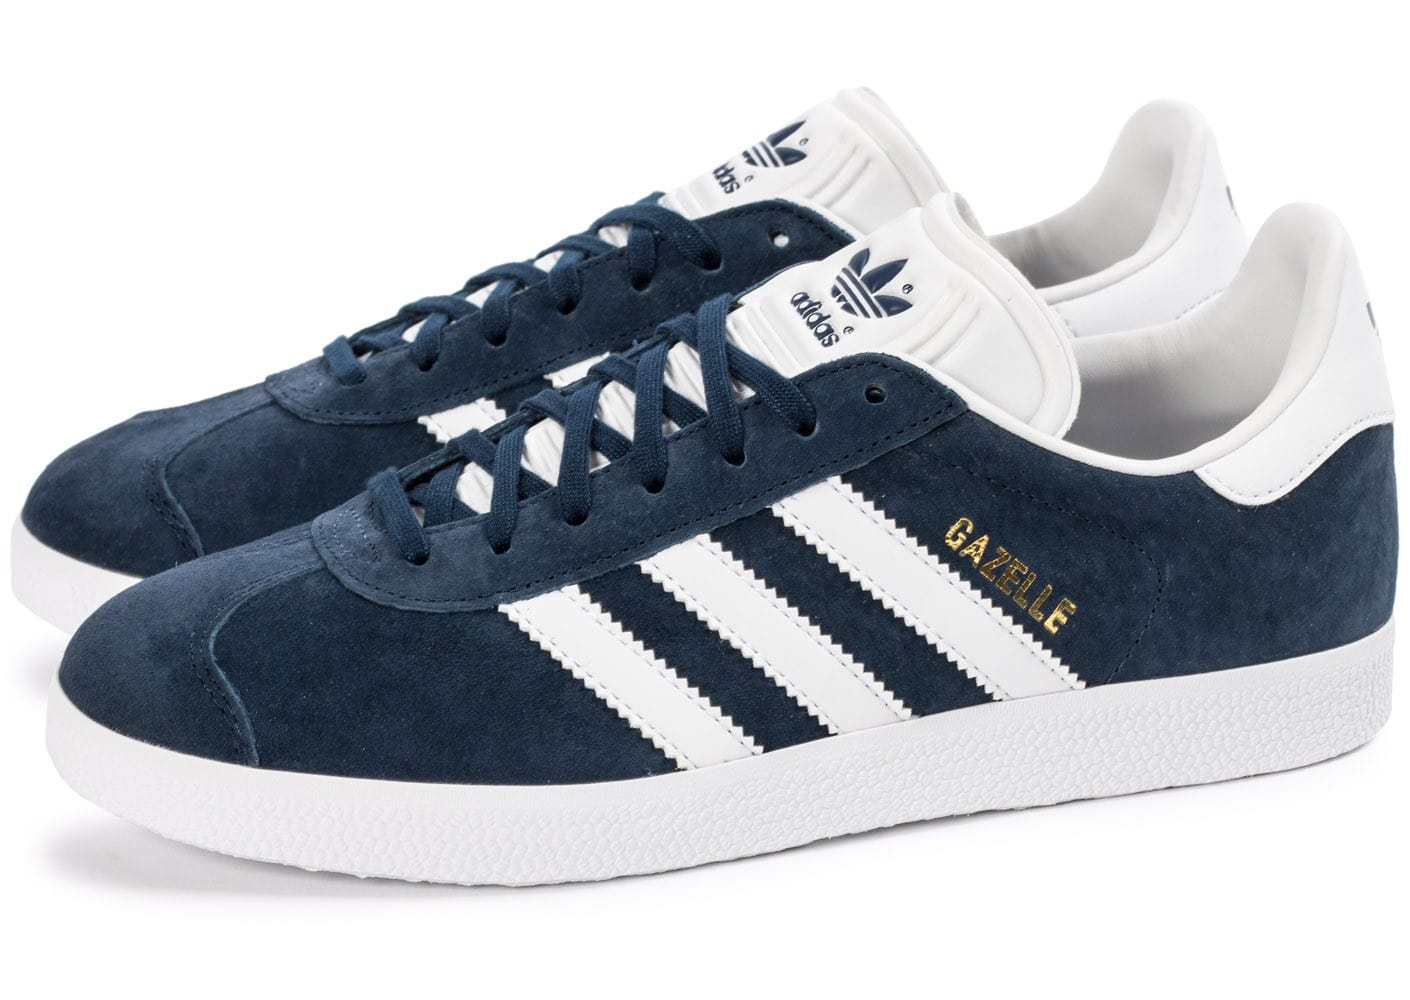 adidas gazelle bleu marine et blanche chaussures homme chausport. Black Bedroom Furniture Sets. Home Design Ideas